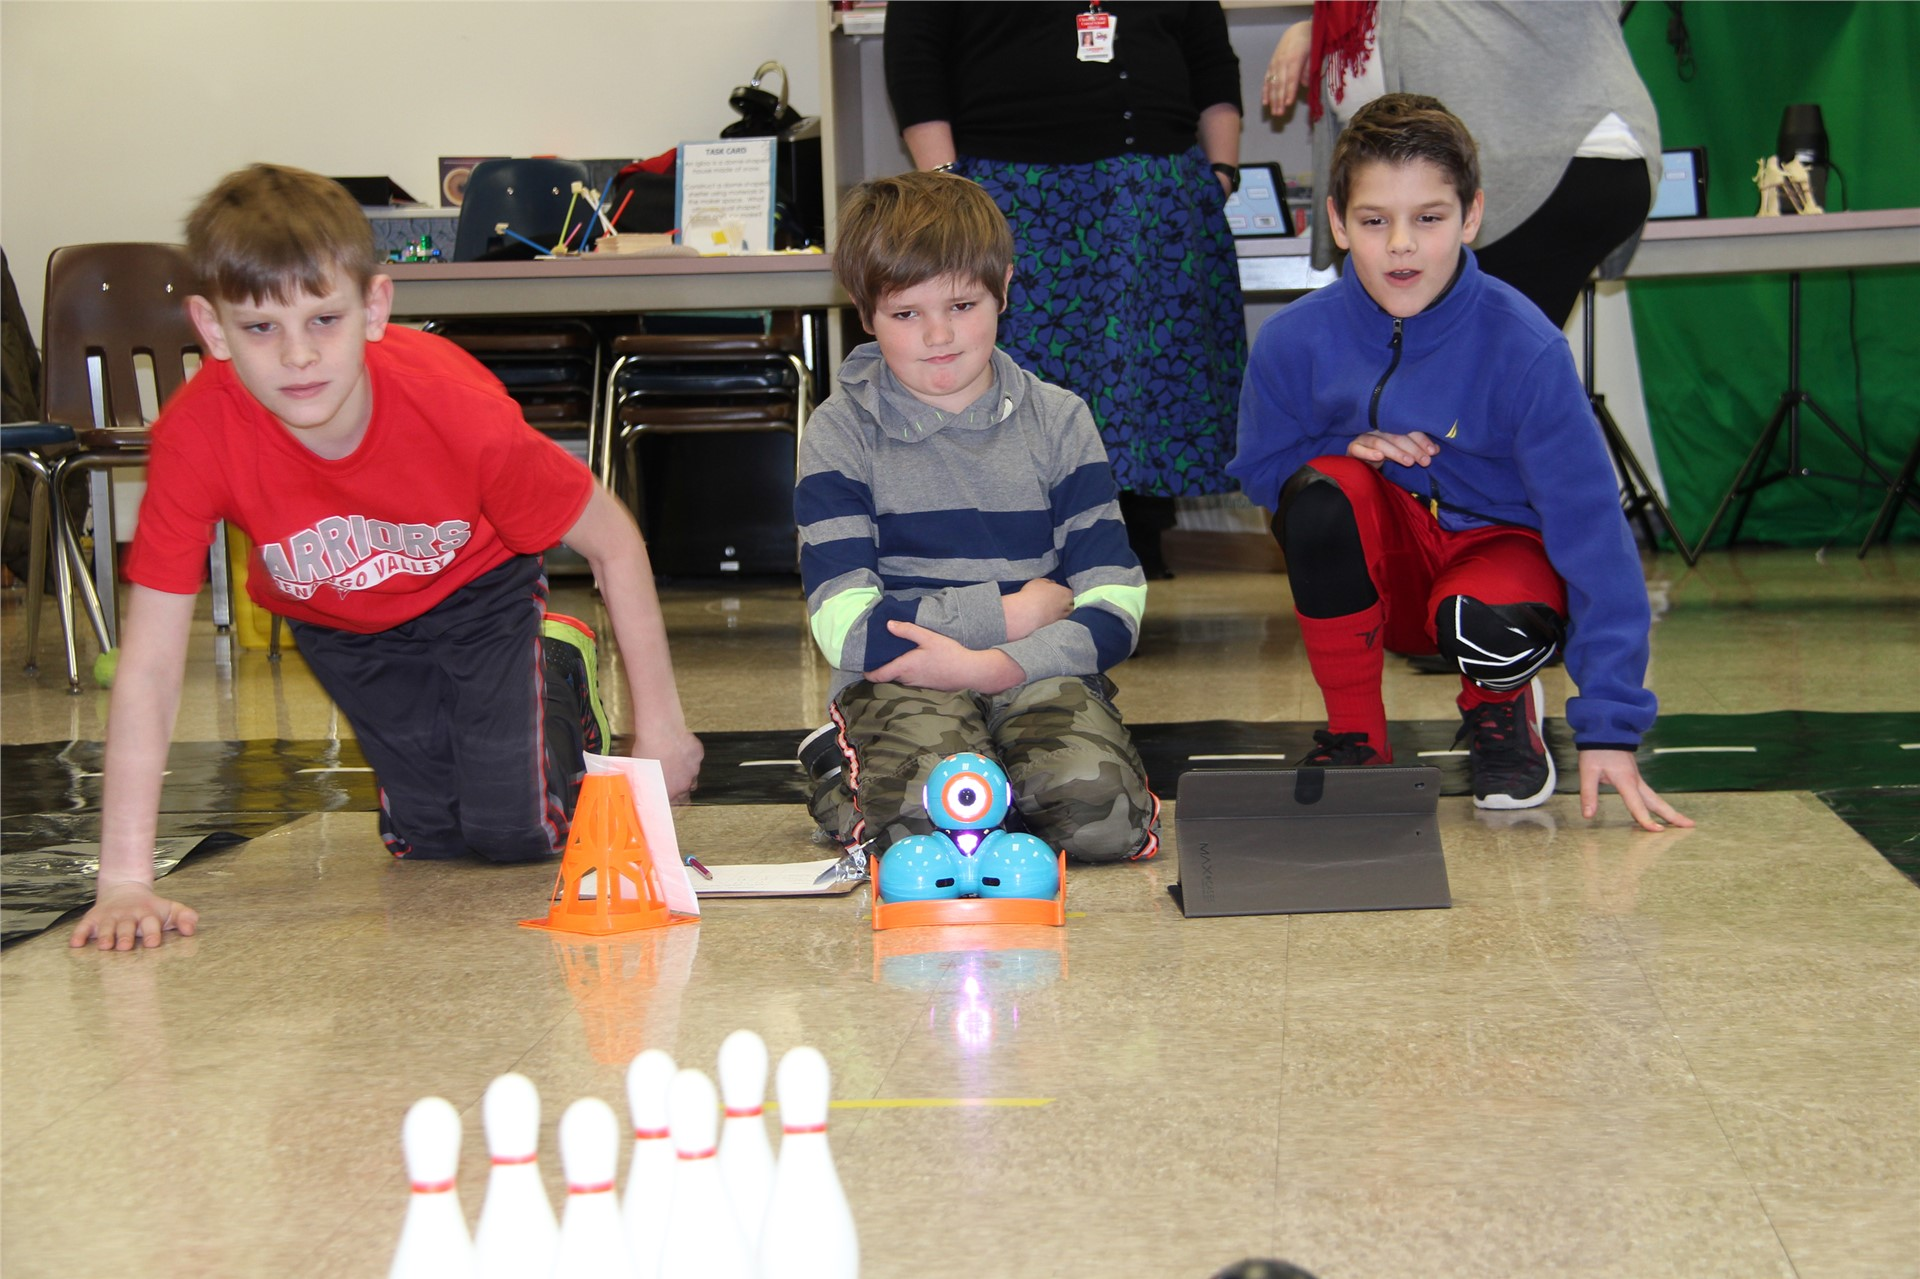 students play with electronic device and bowling pins